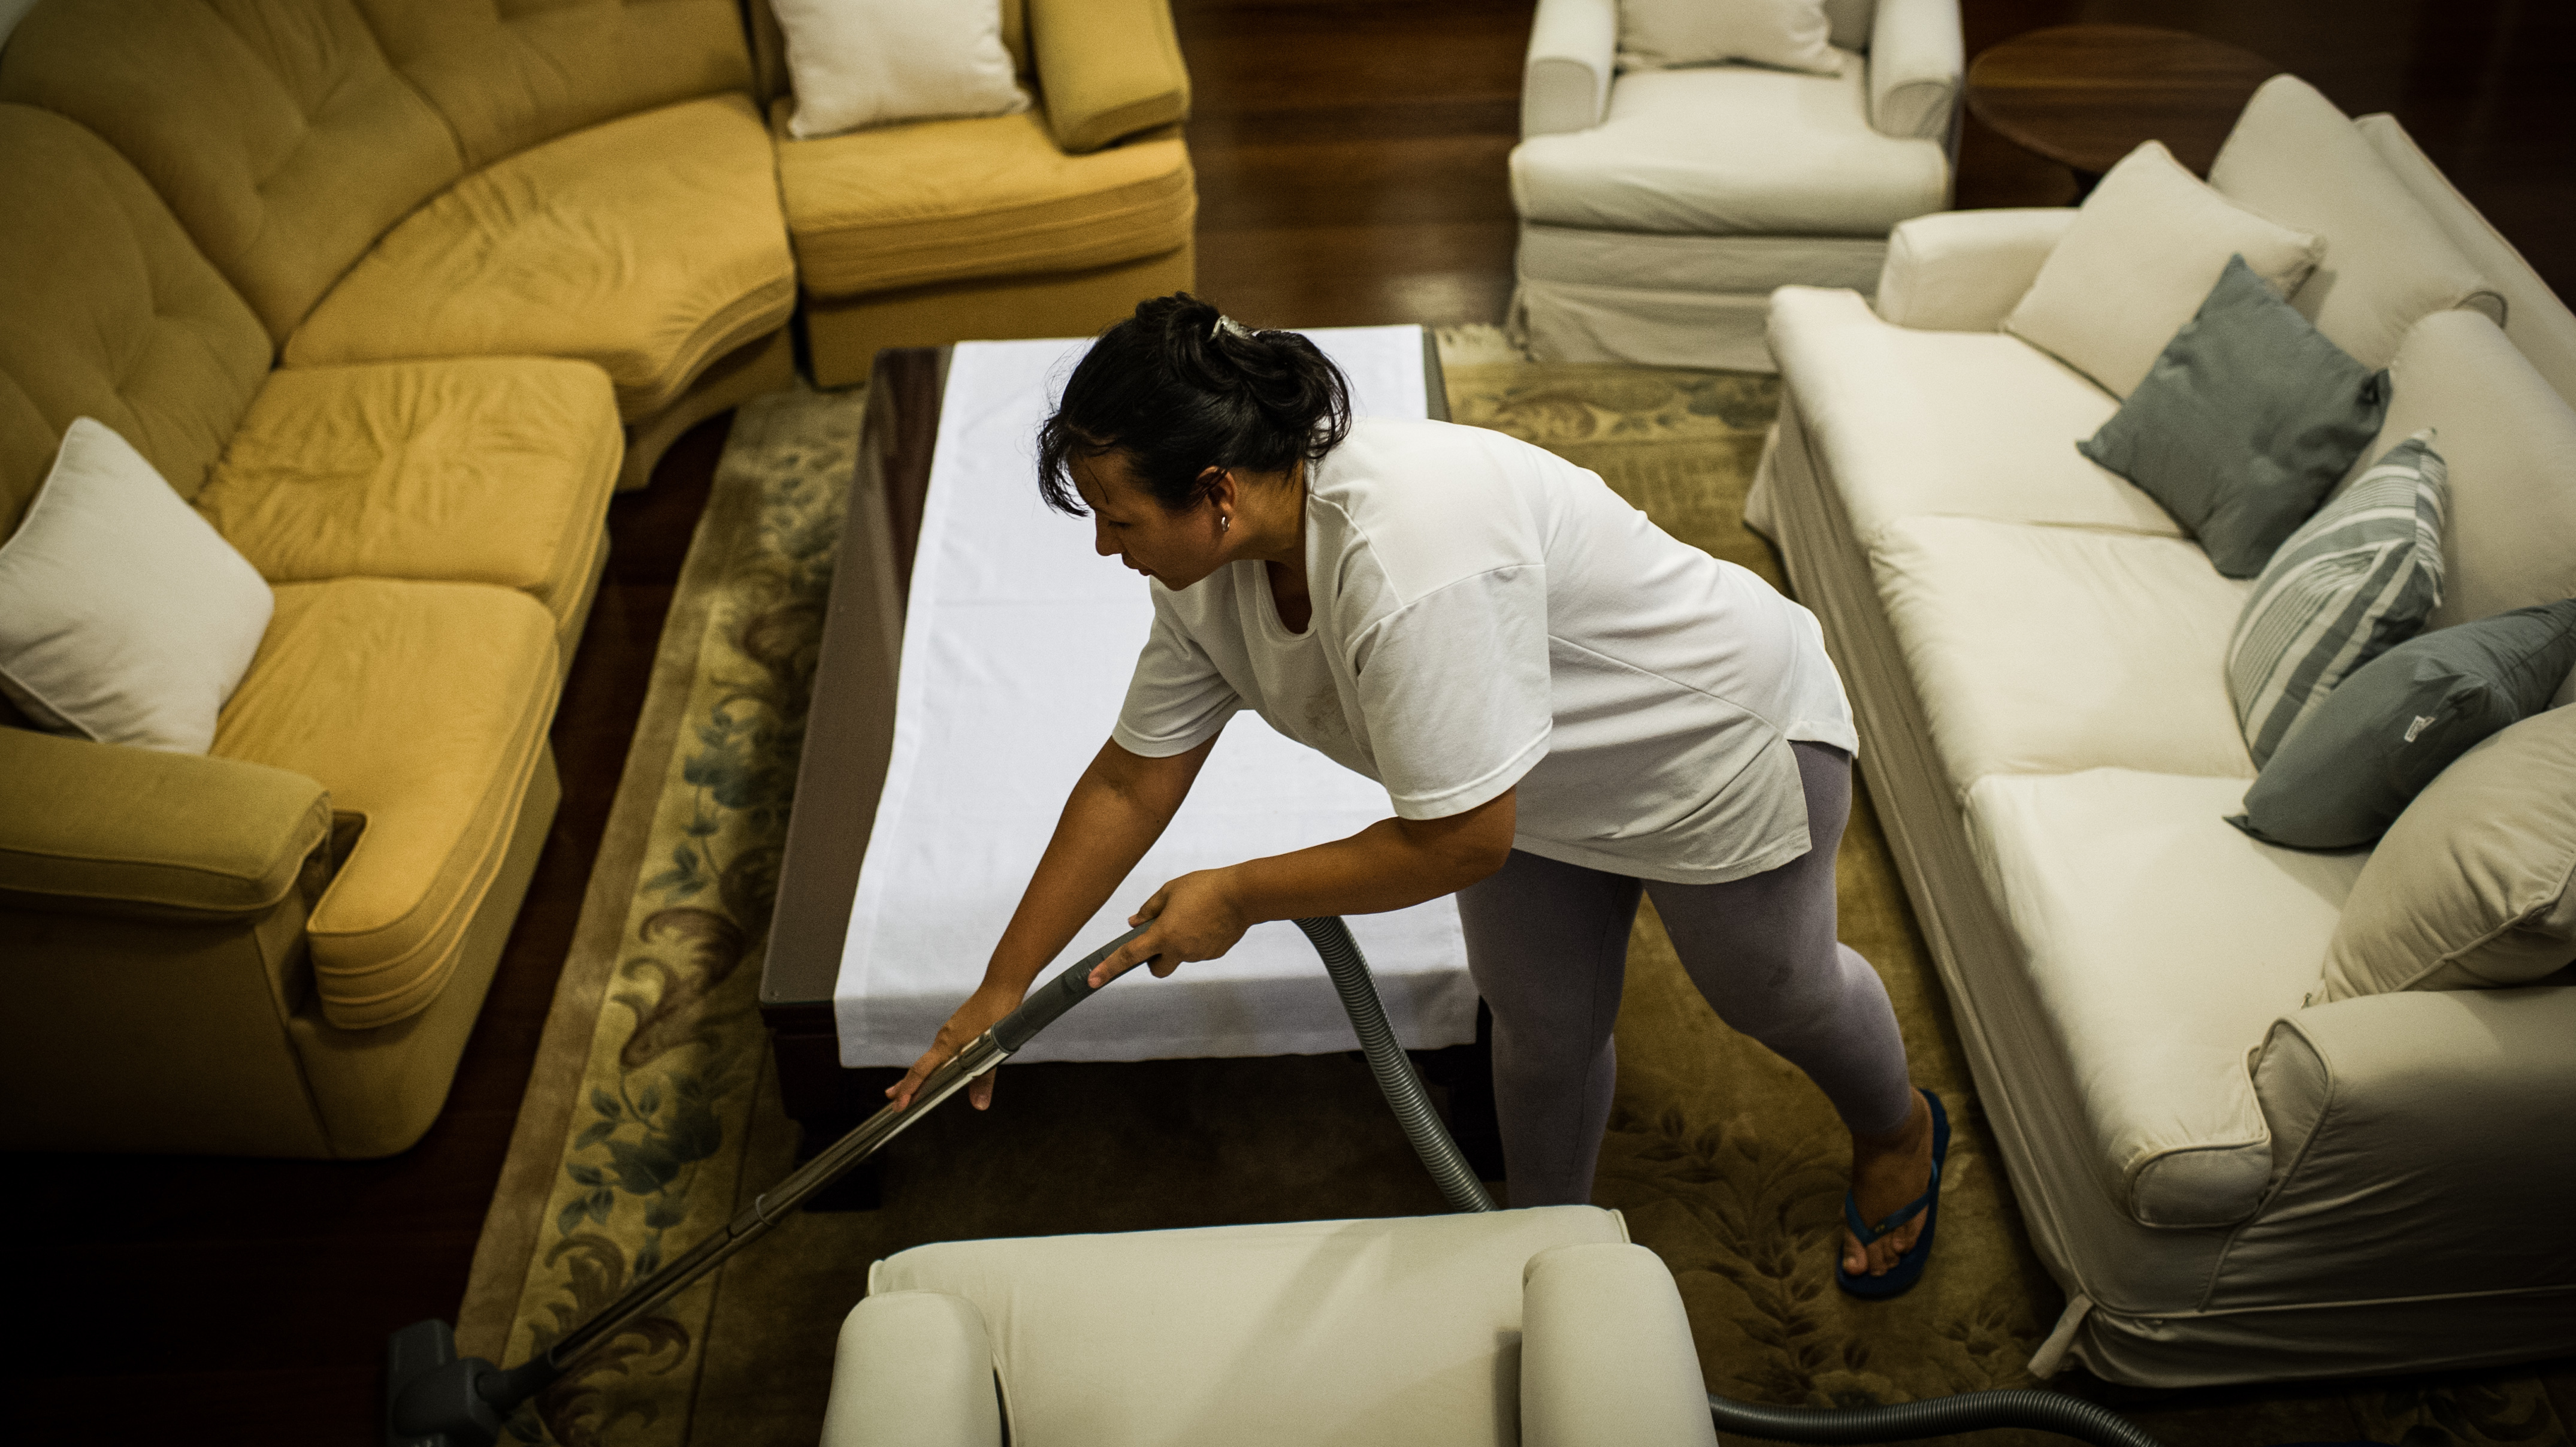 We Are Not Valued Brazils Domestic Workers Seek Rights NCPR News - Brazil's tallahassee